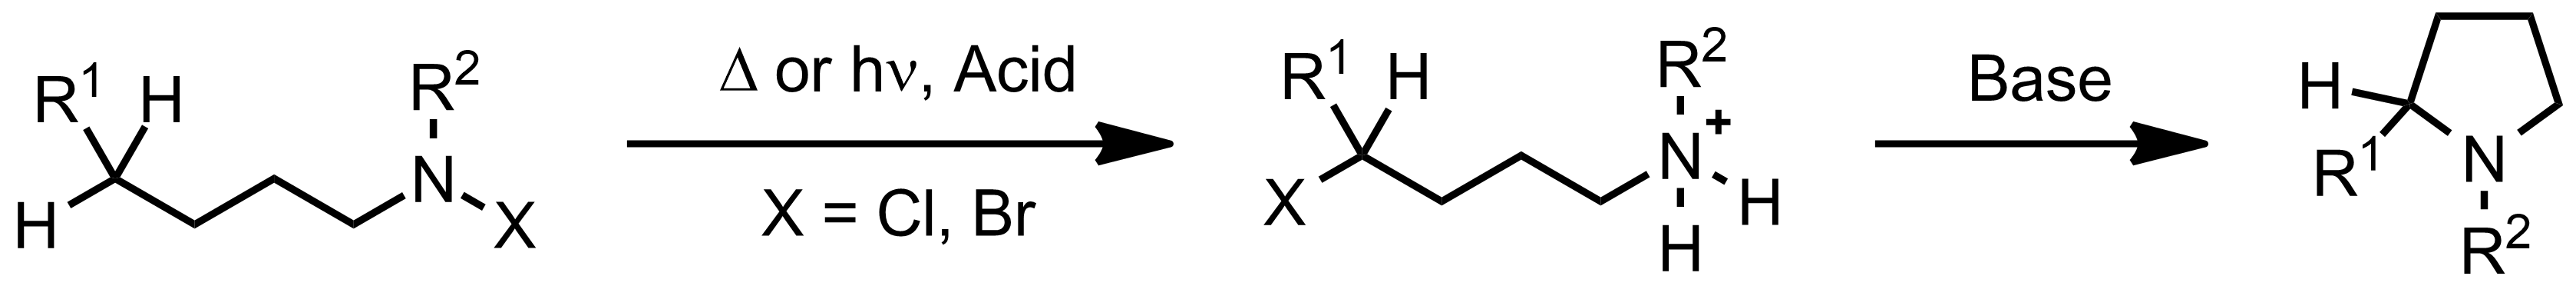 Schematic representation of the Hofmann-Löffler-Freytag Reaction.